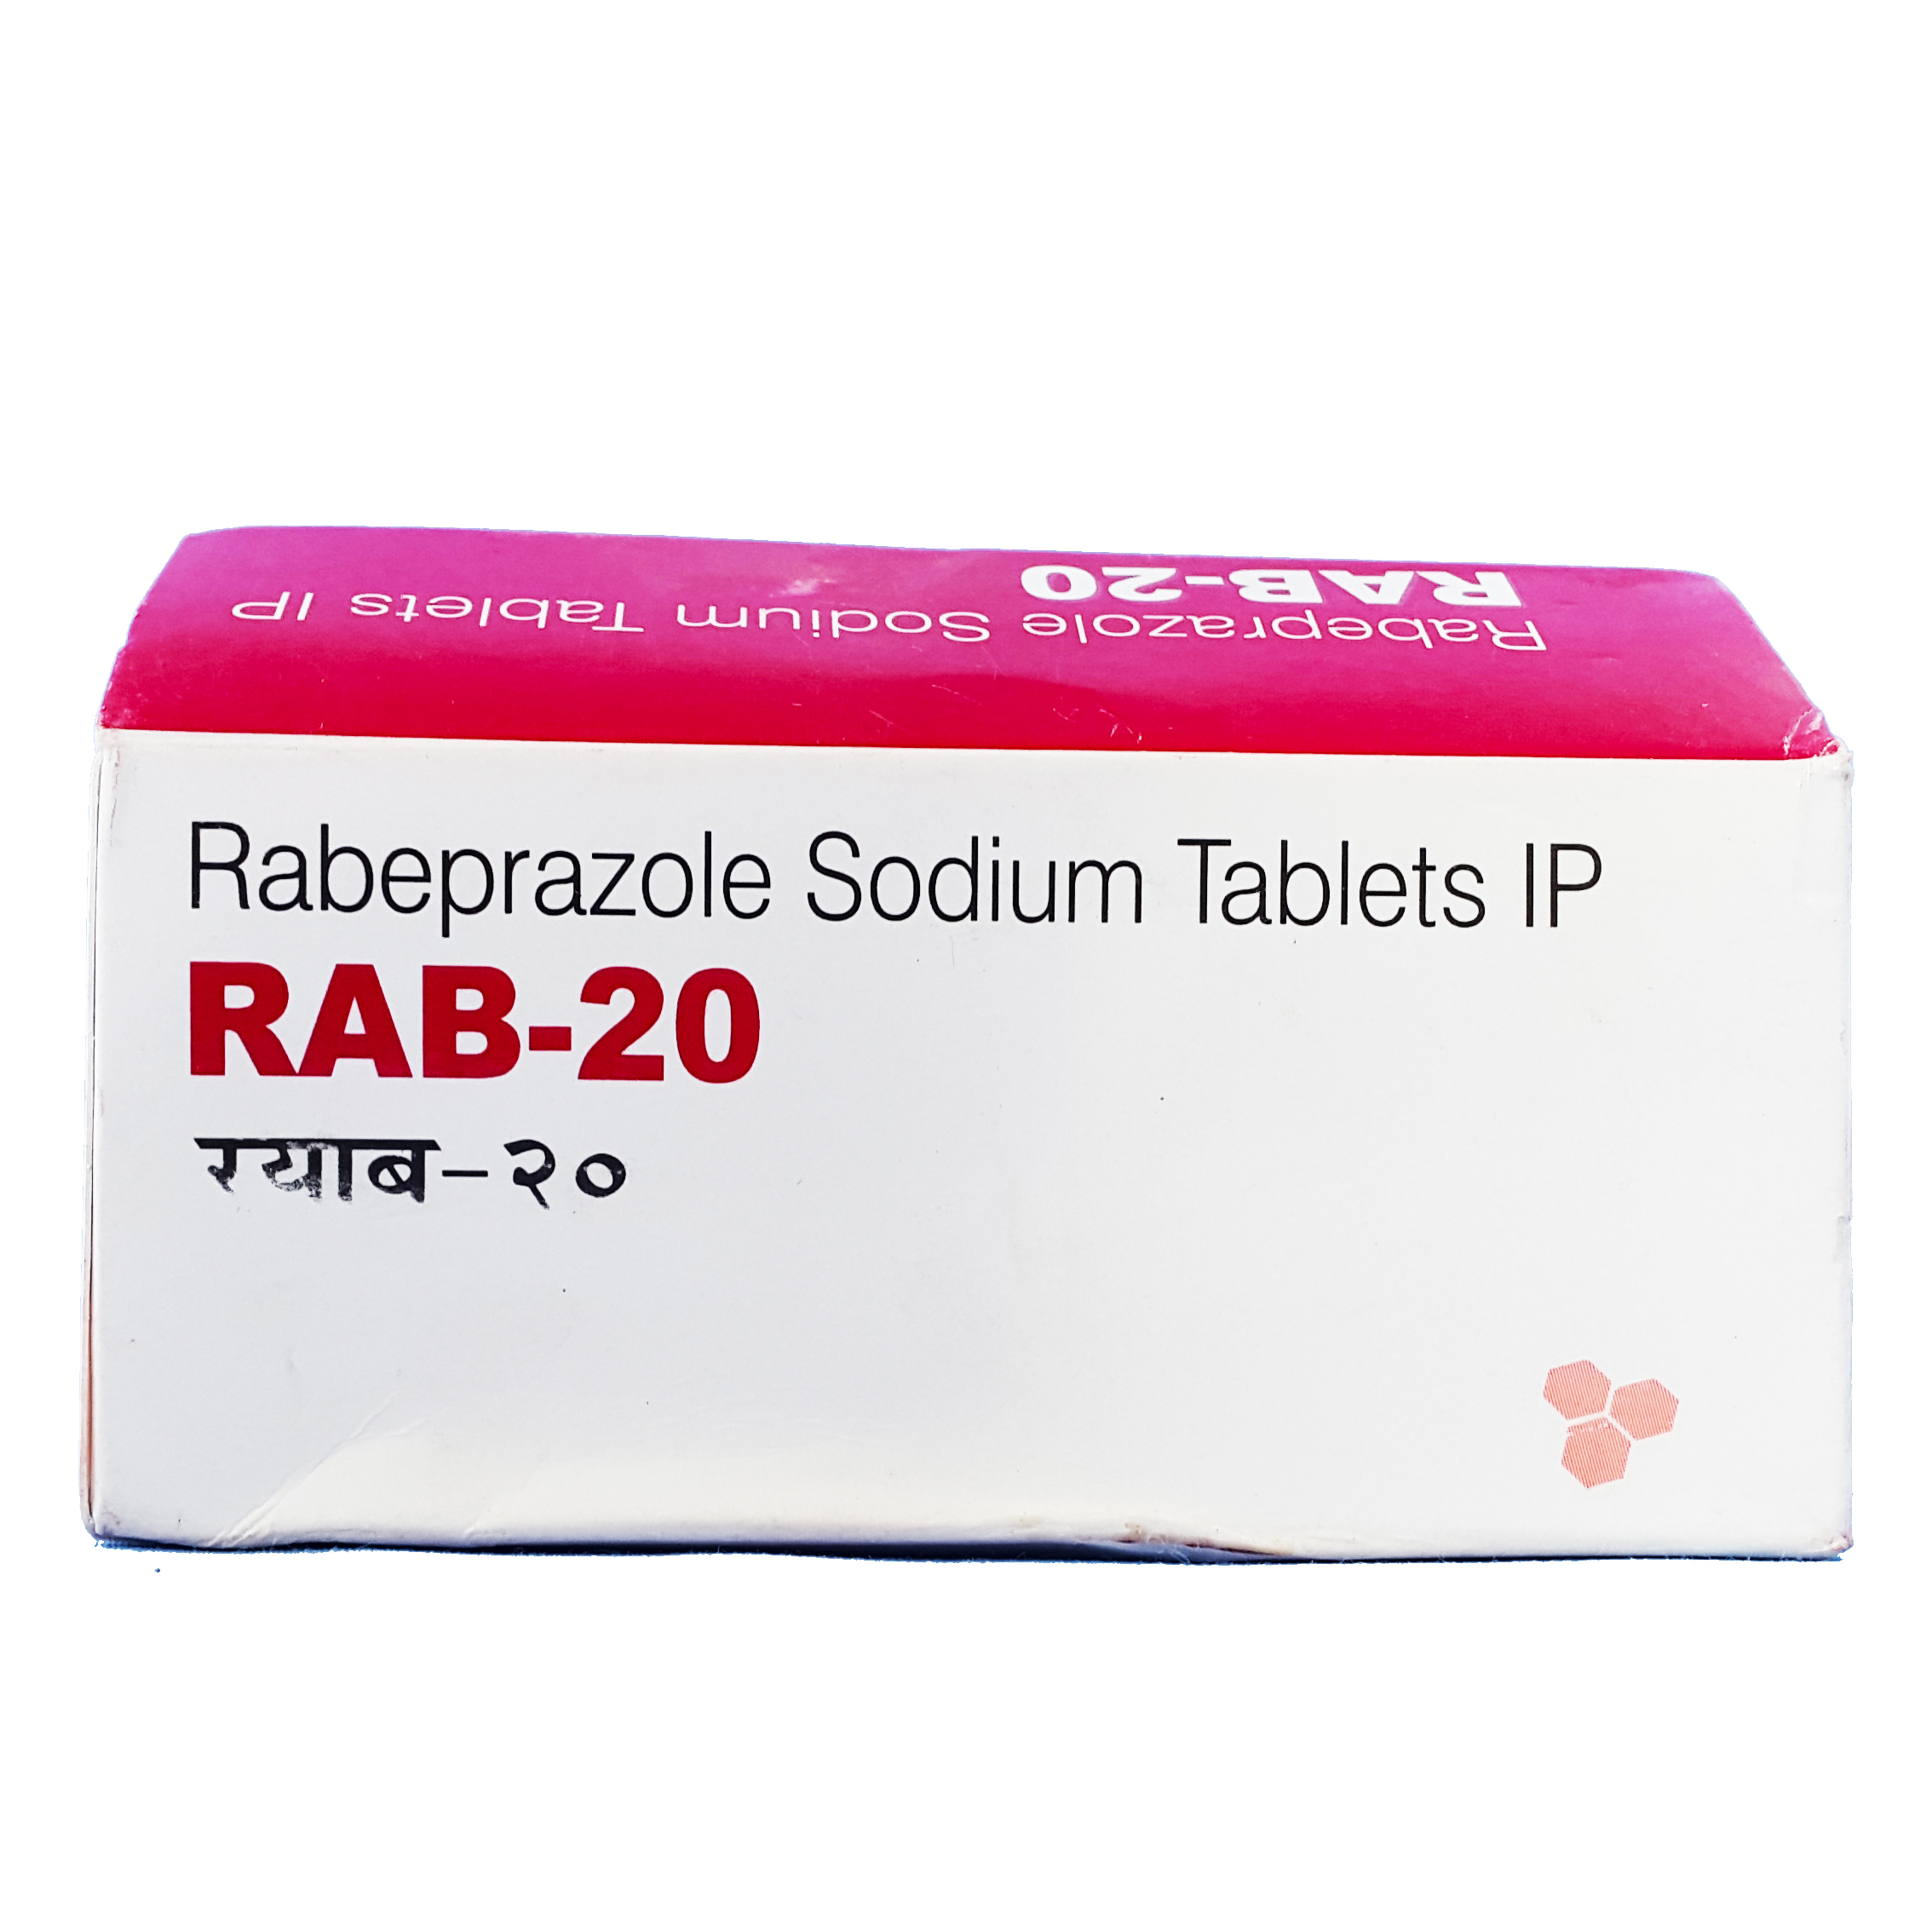 Rab 20mg tablet | Nepmeds | Your Health Partner | Buy Medicine Online